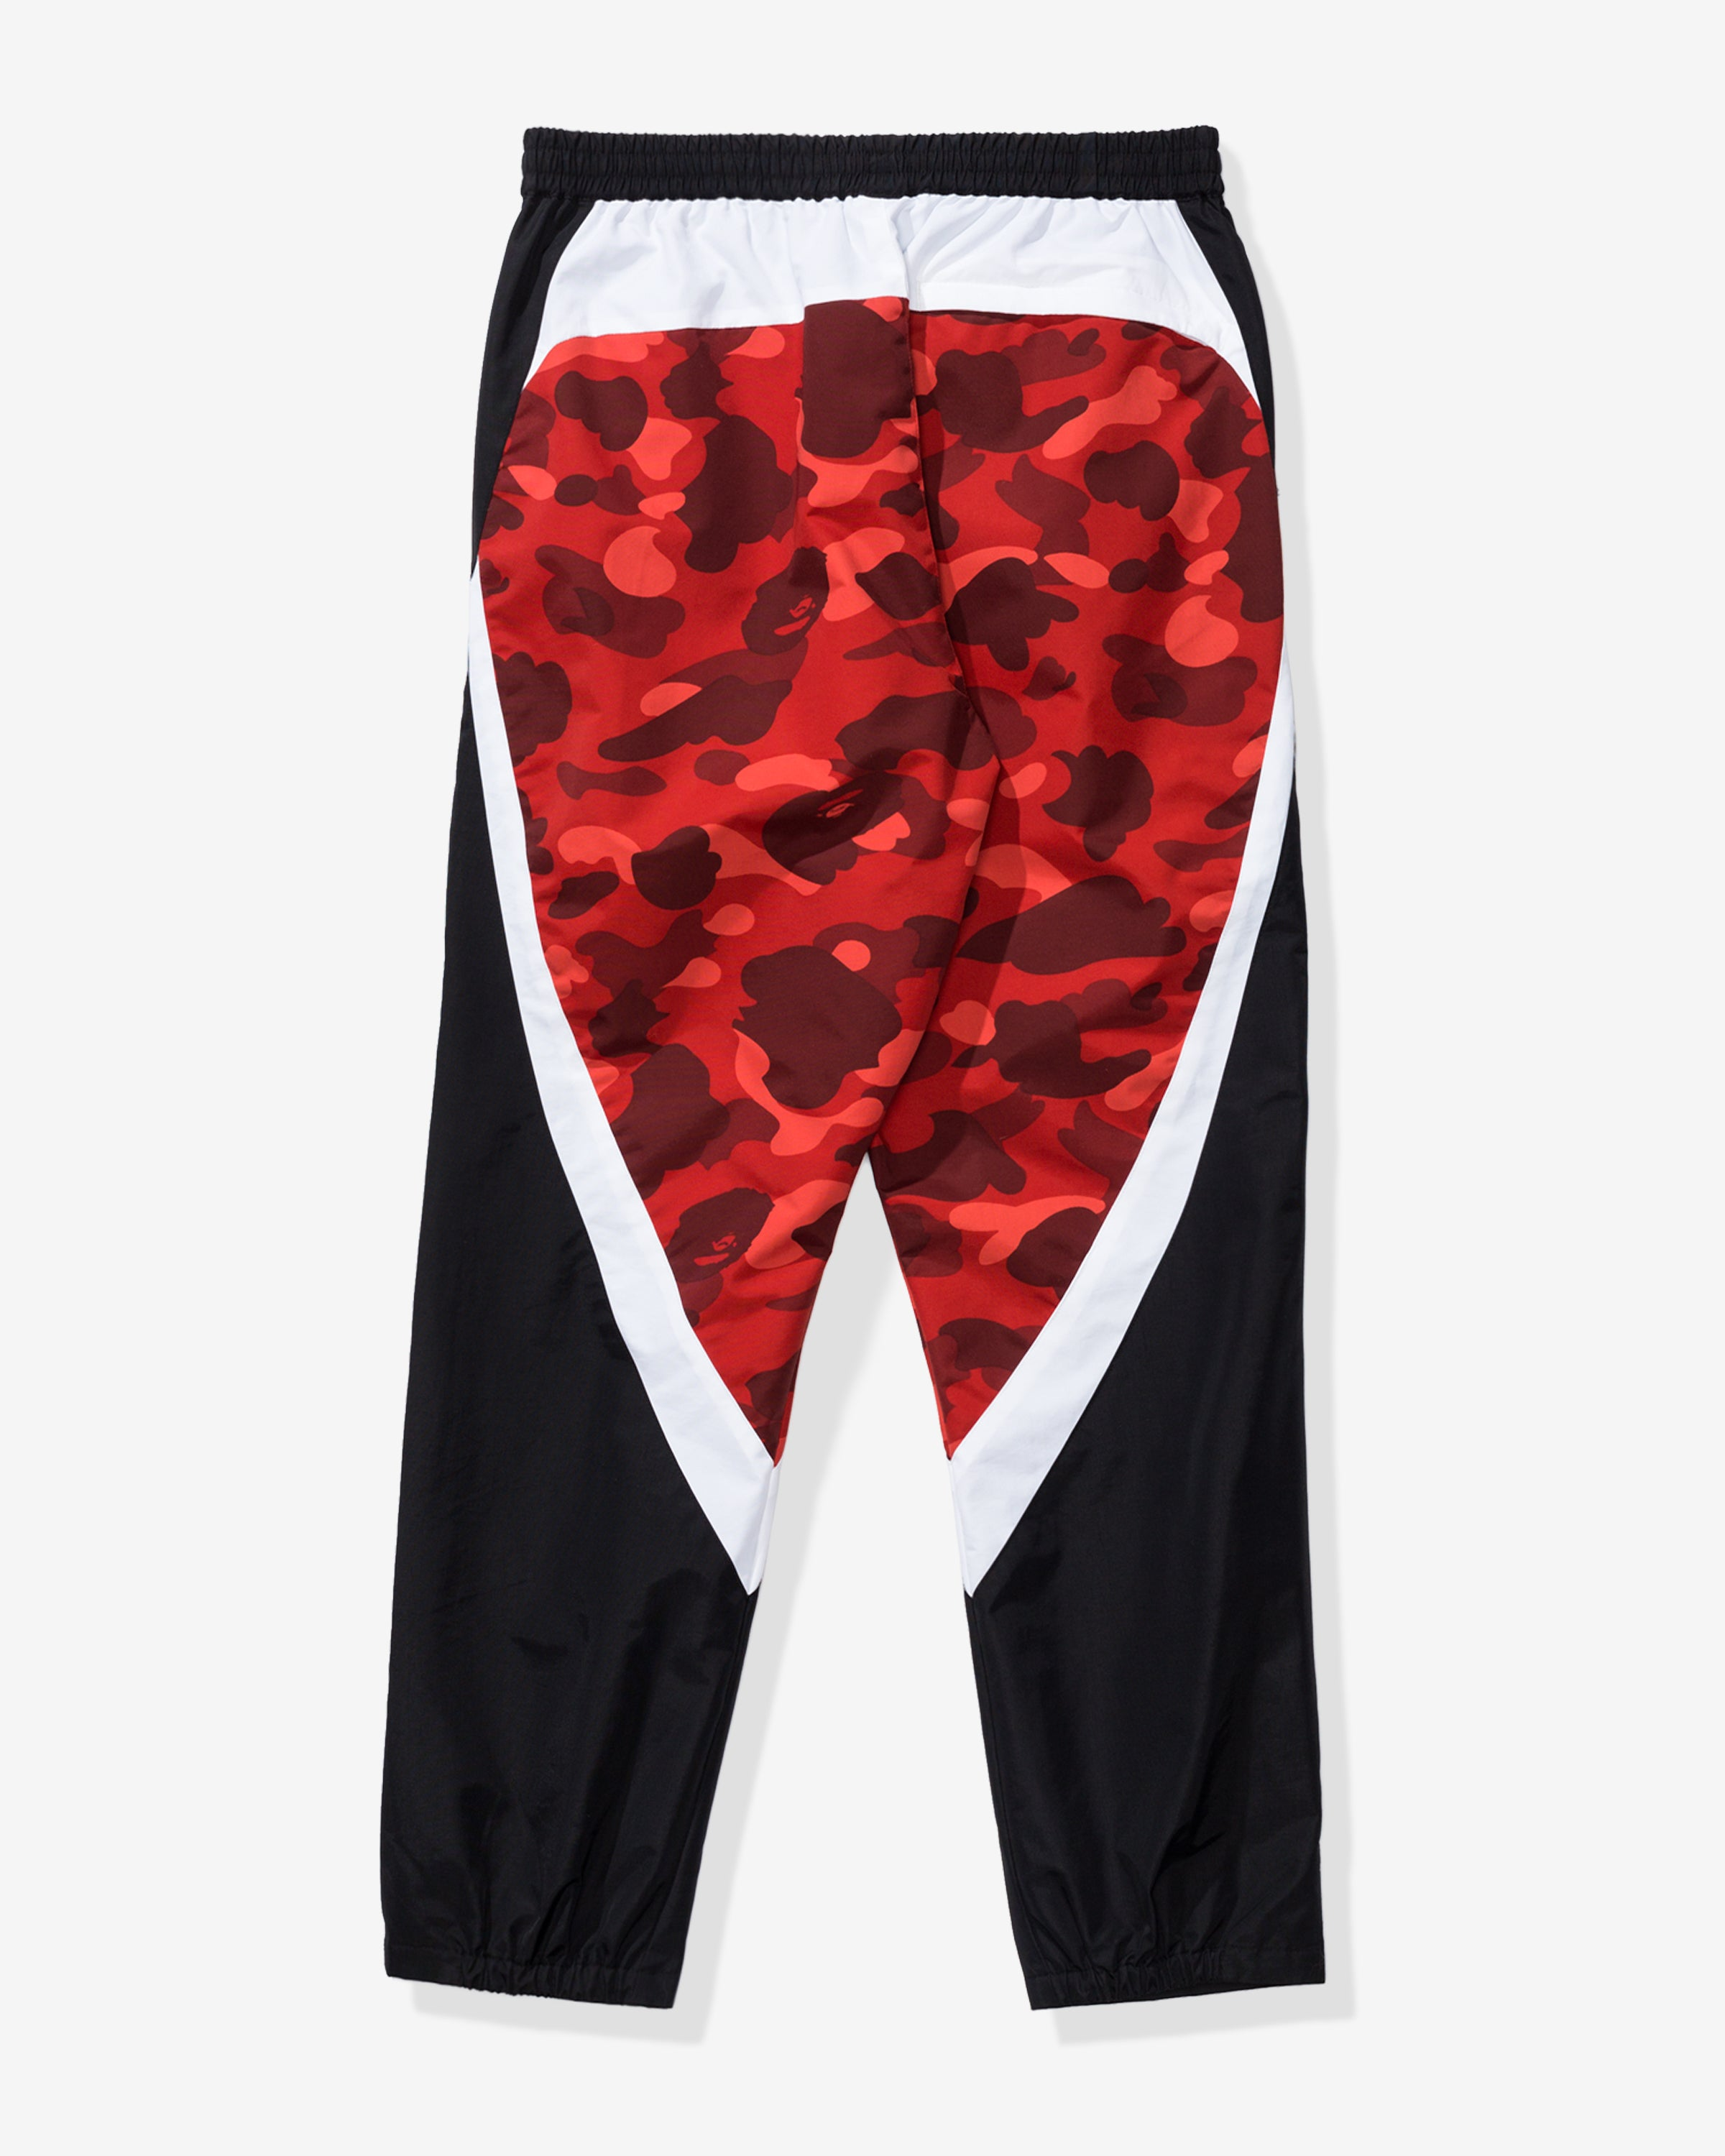 BAPE COLOR CAMO COLOR BLOCK PANTS - RED